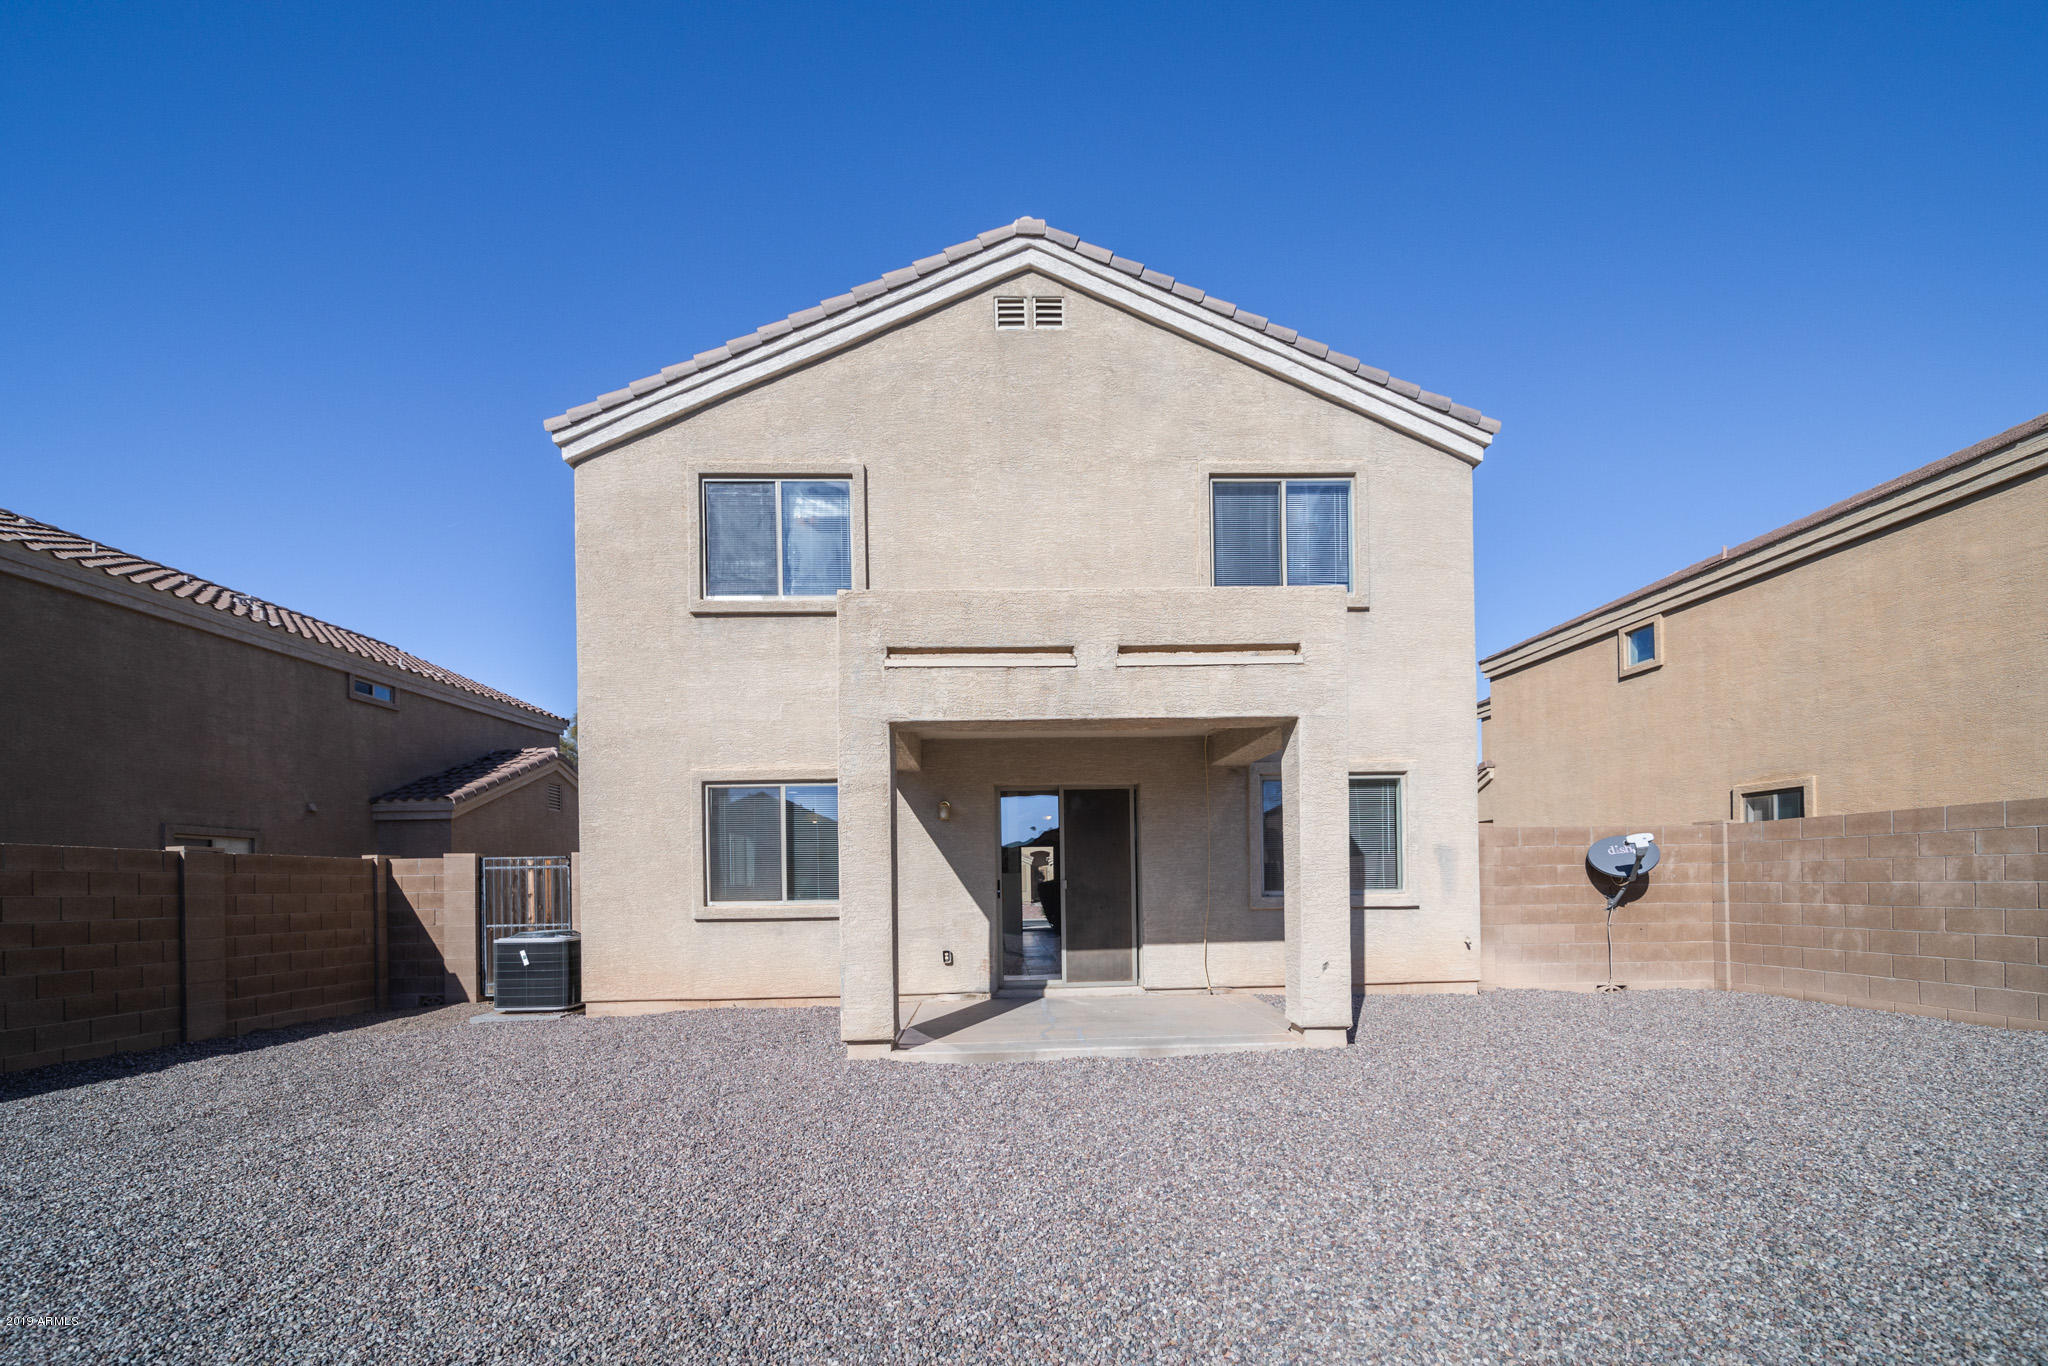 MLS 5866860 2189 W PINKLEY Avenue, Coolidge, AZ 85128 Coolidge AZ 5 or More Bedroom